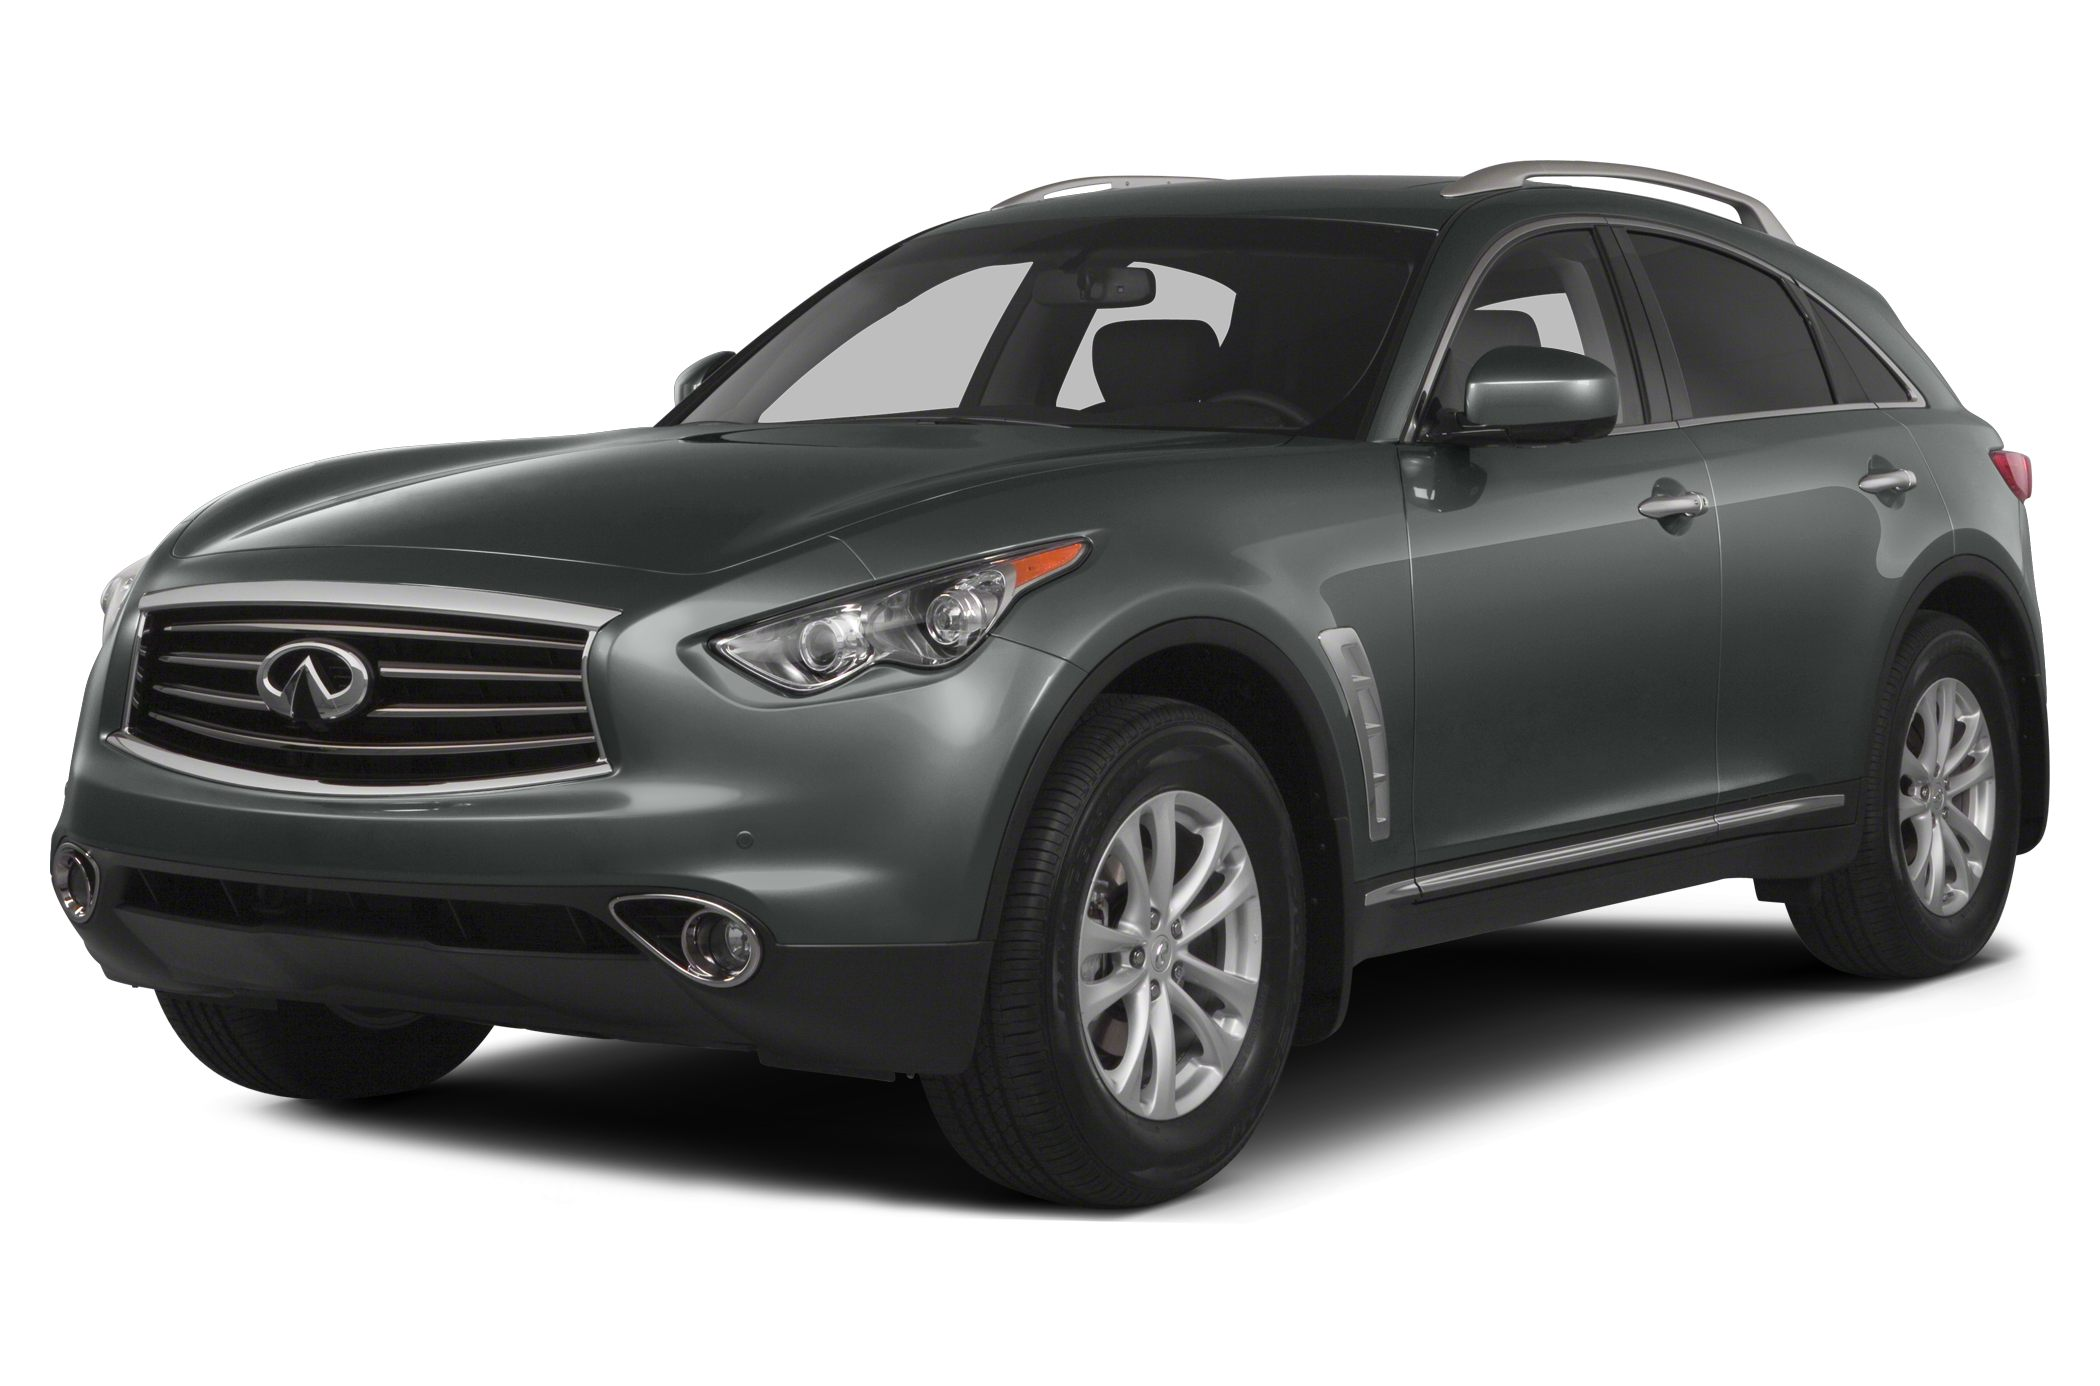 2014 Infiniti QX70 Base SUV for sale in Sanford for $33,300 with 22,959 miles